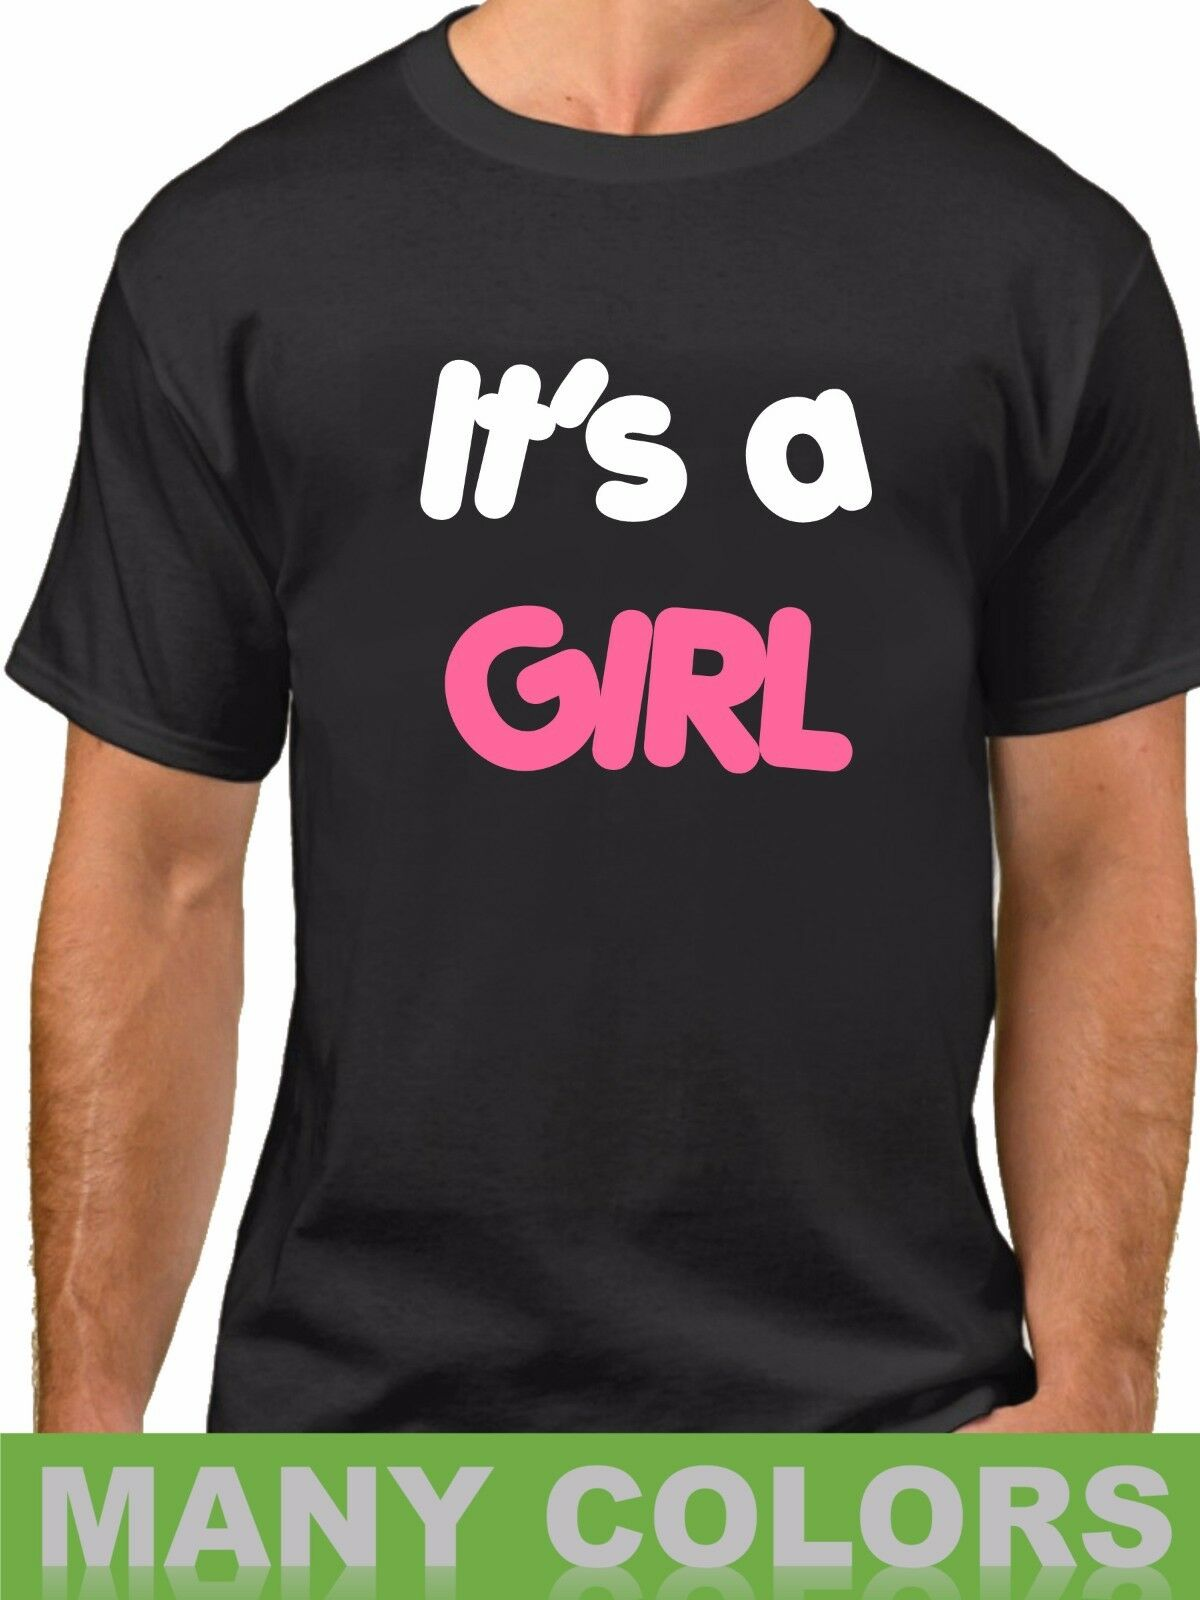 0dd42fa83 Details zu Men's It's a Girl Shirt Baby Announcement Tee Proud Daddy New Dad  Fathers Day Funny free shipping Unisex tee